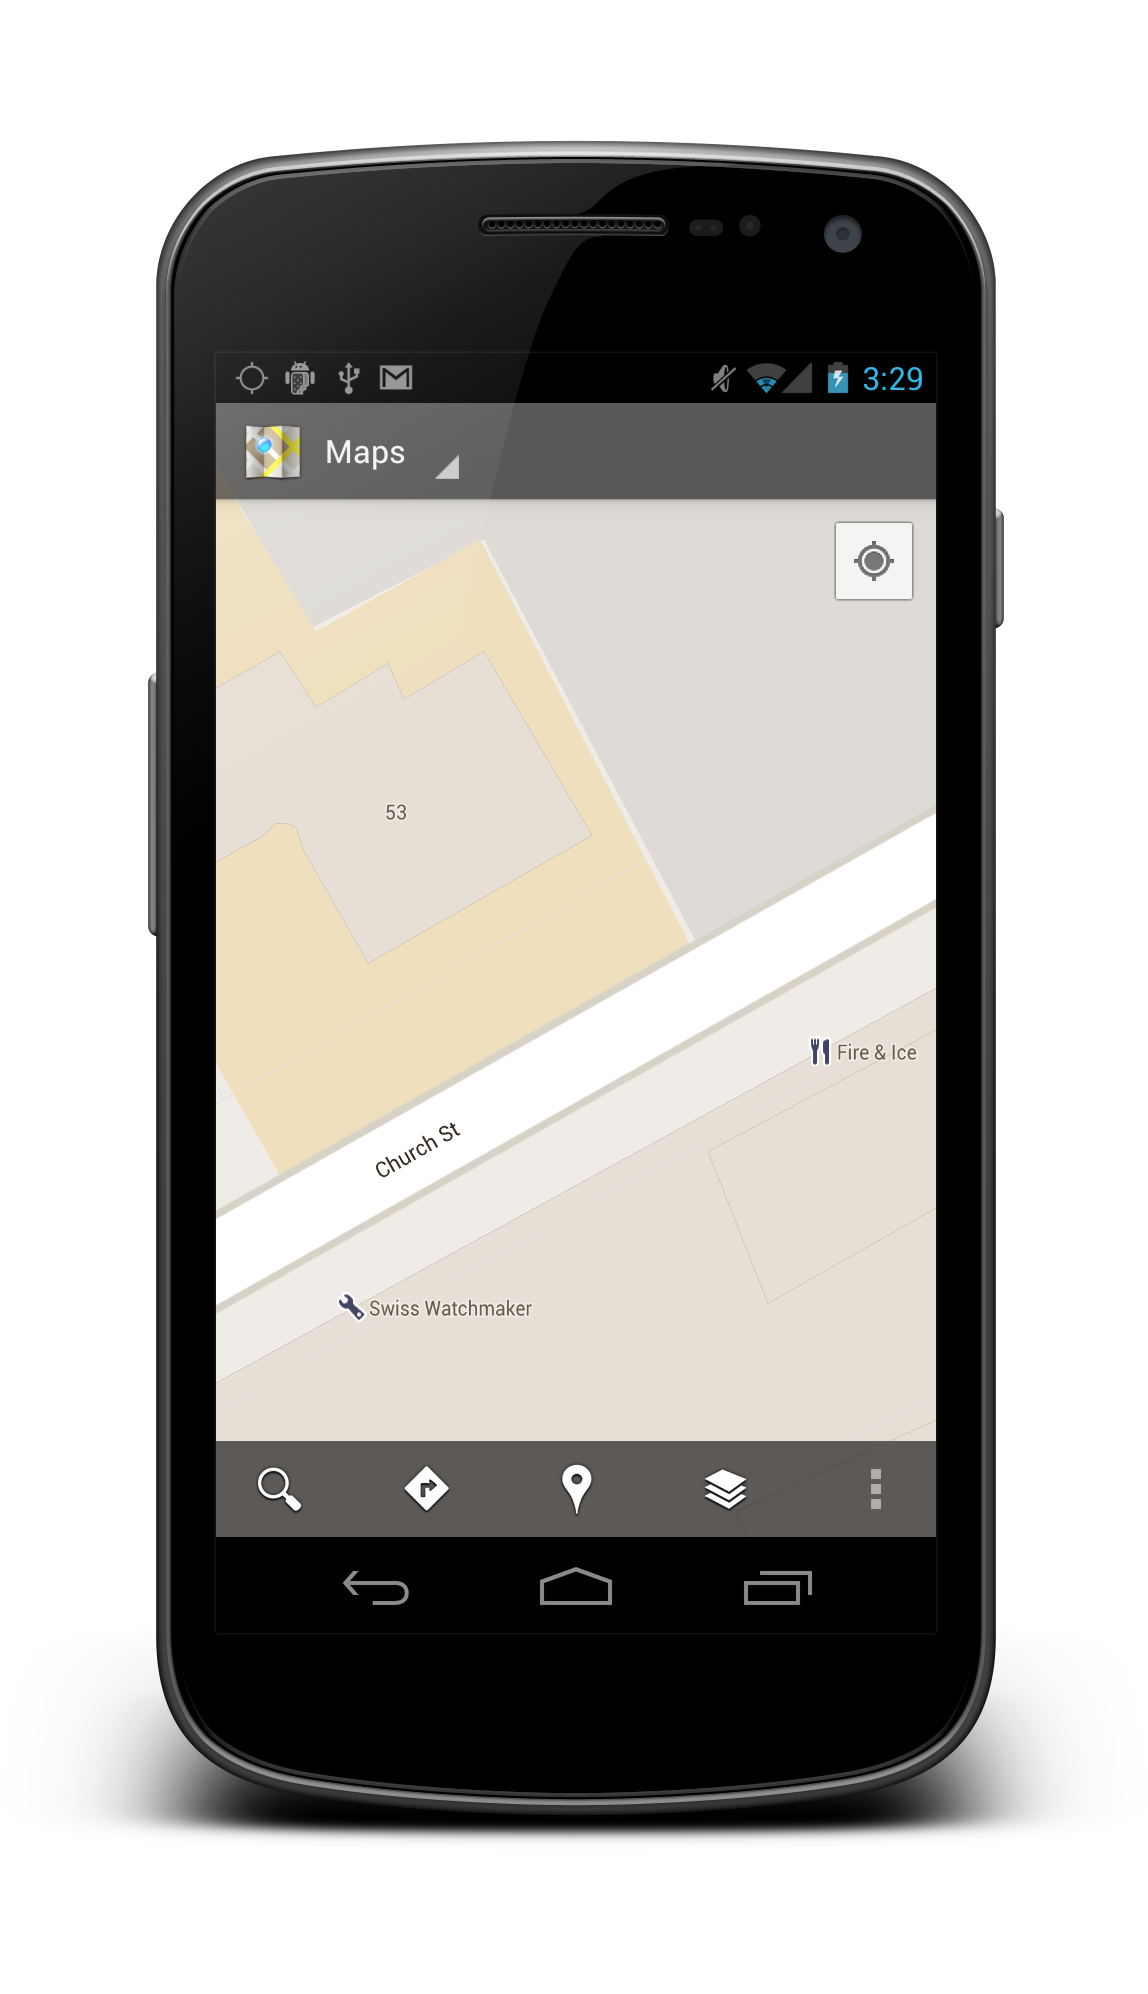 Example screenshot of built-in Google Maps app